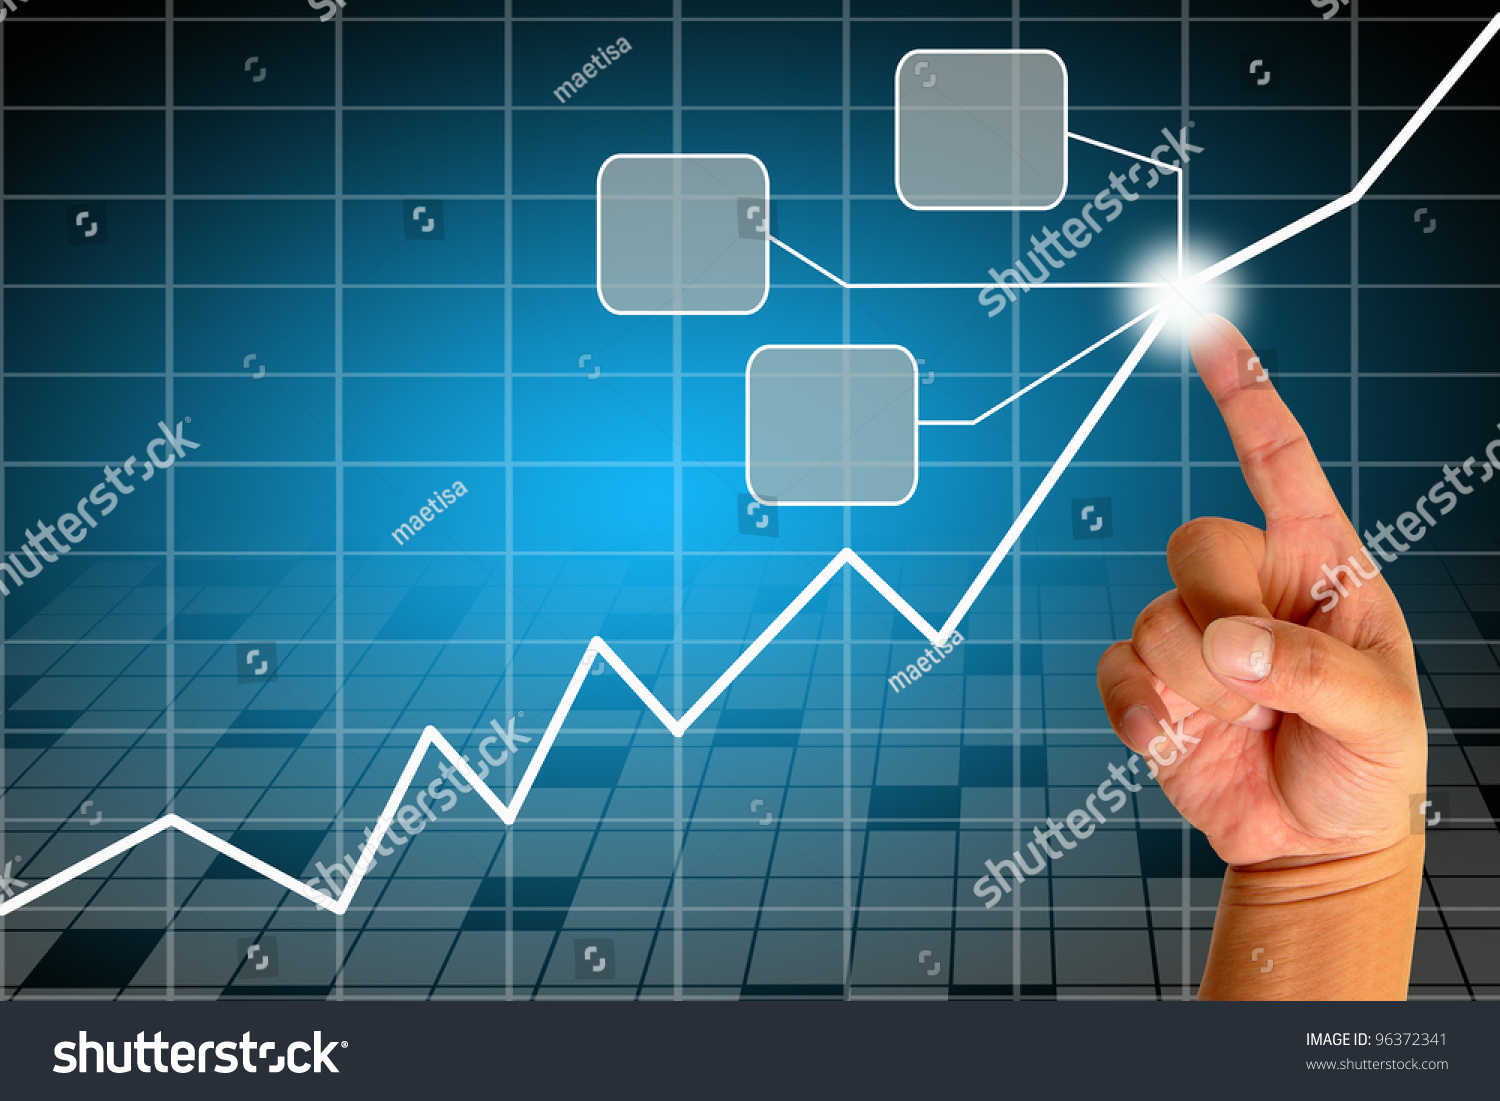 Drawing Line Graphs By Hand : Hand drawing graph stock illustration shutterstock